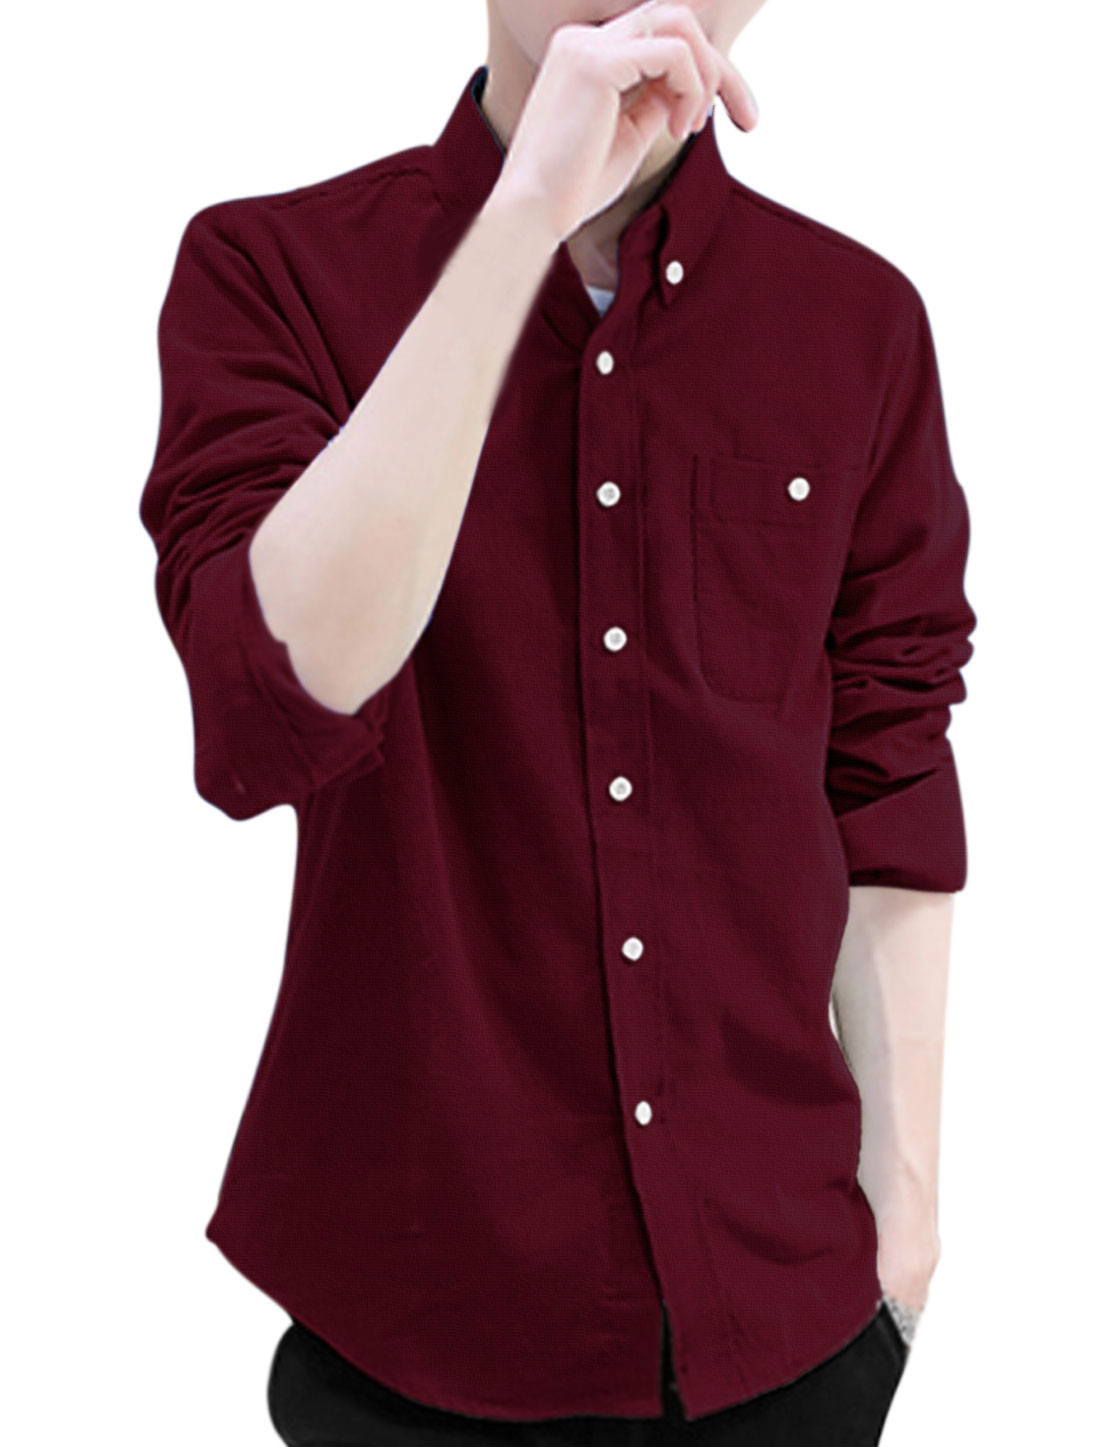 Men Button Closure Front Fleece Inside Stylish Corduroy Shirt Burgundy M